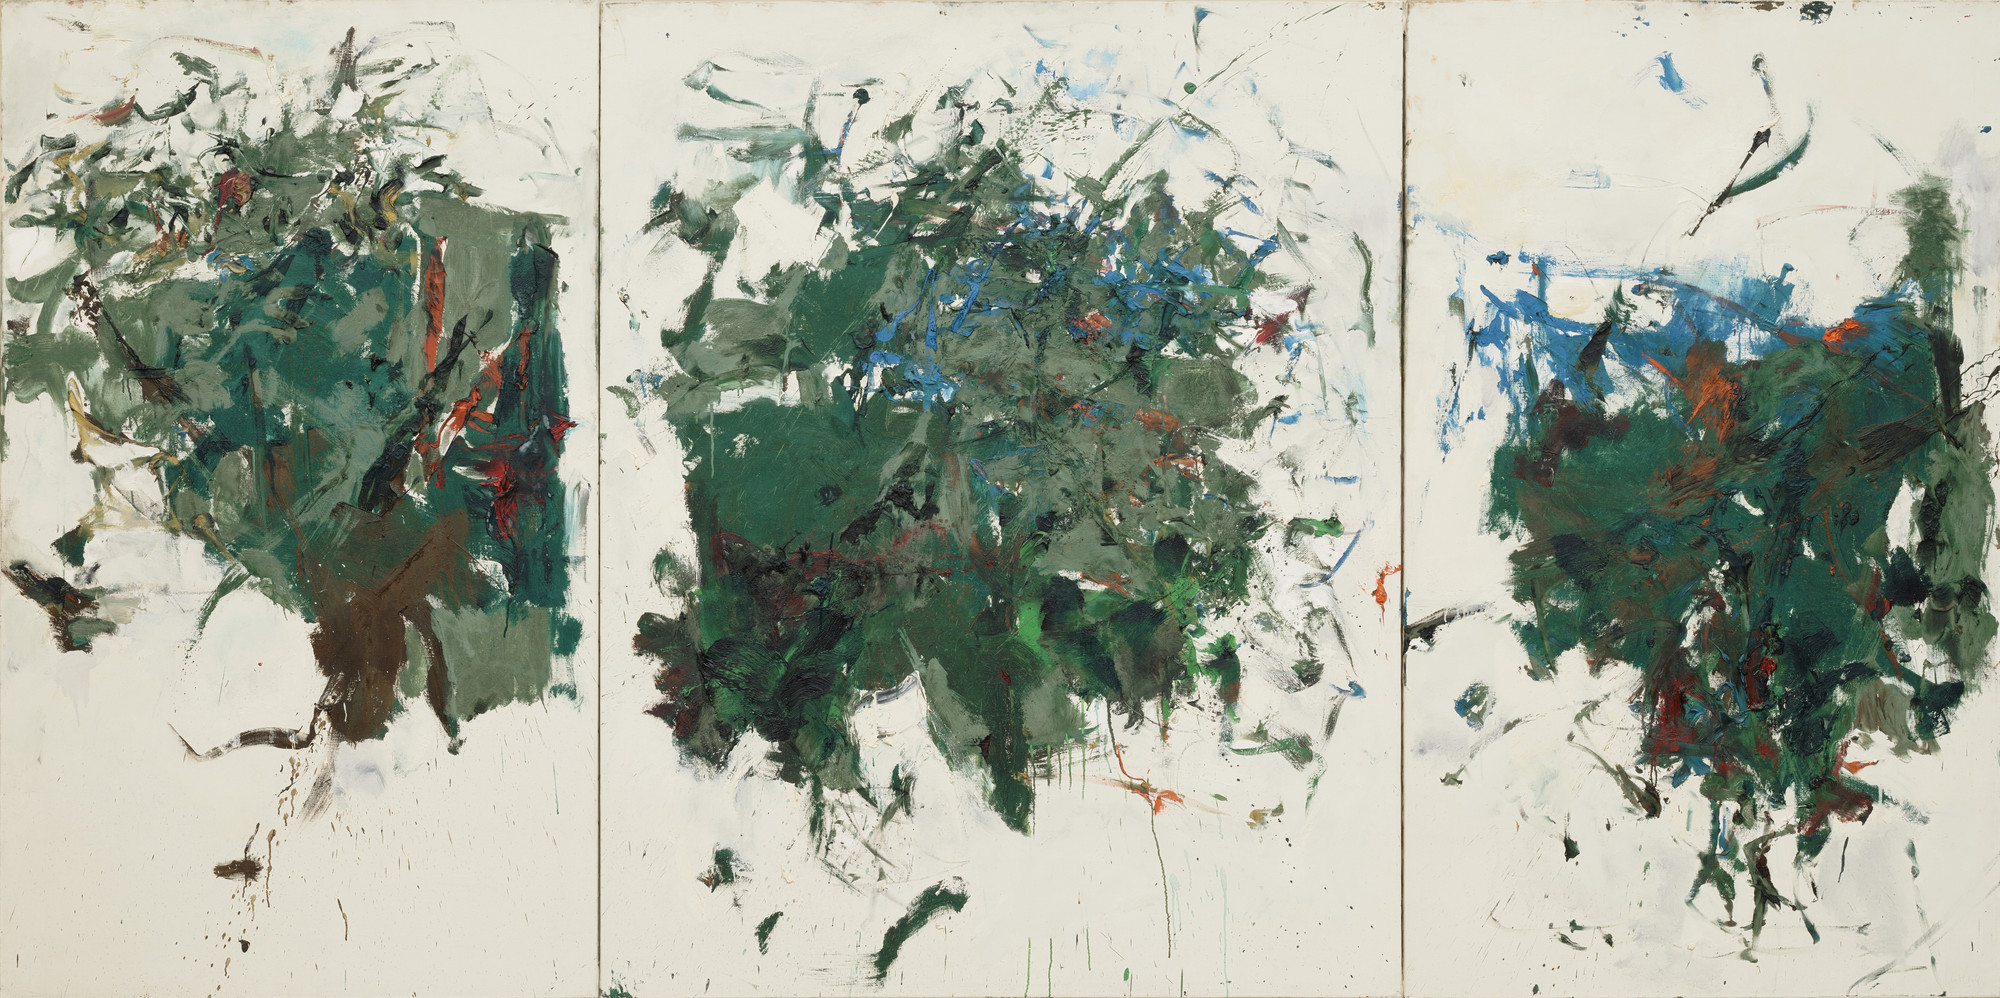 Joan Mitchell. Untitled. 1964